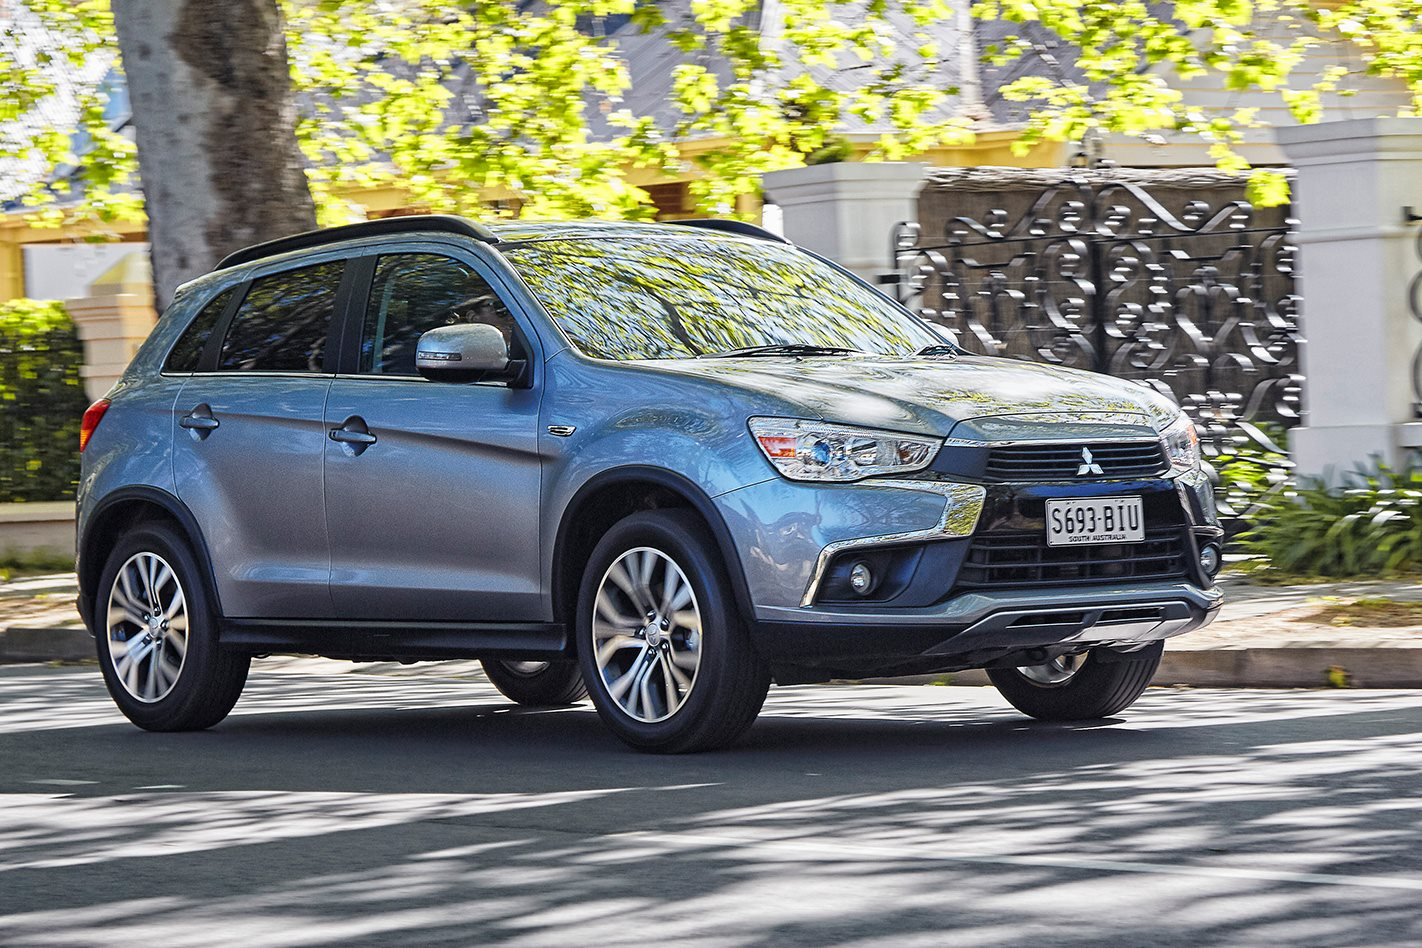 55 All New Mitsubishi Asx Redesign